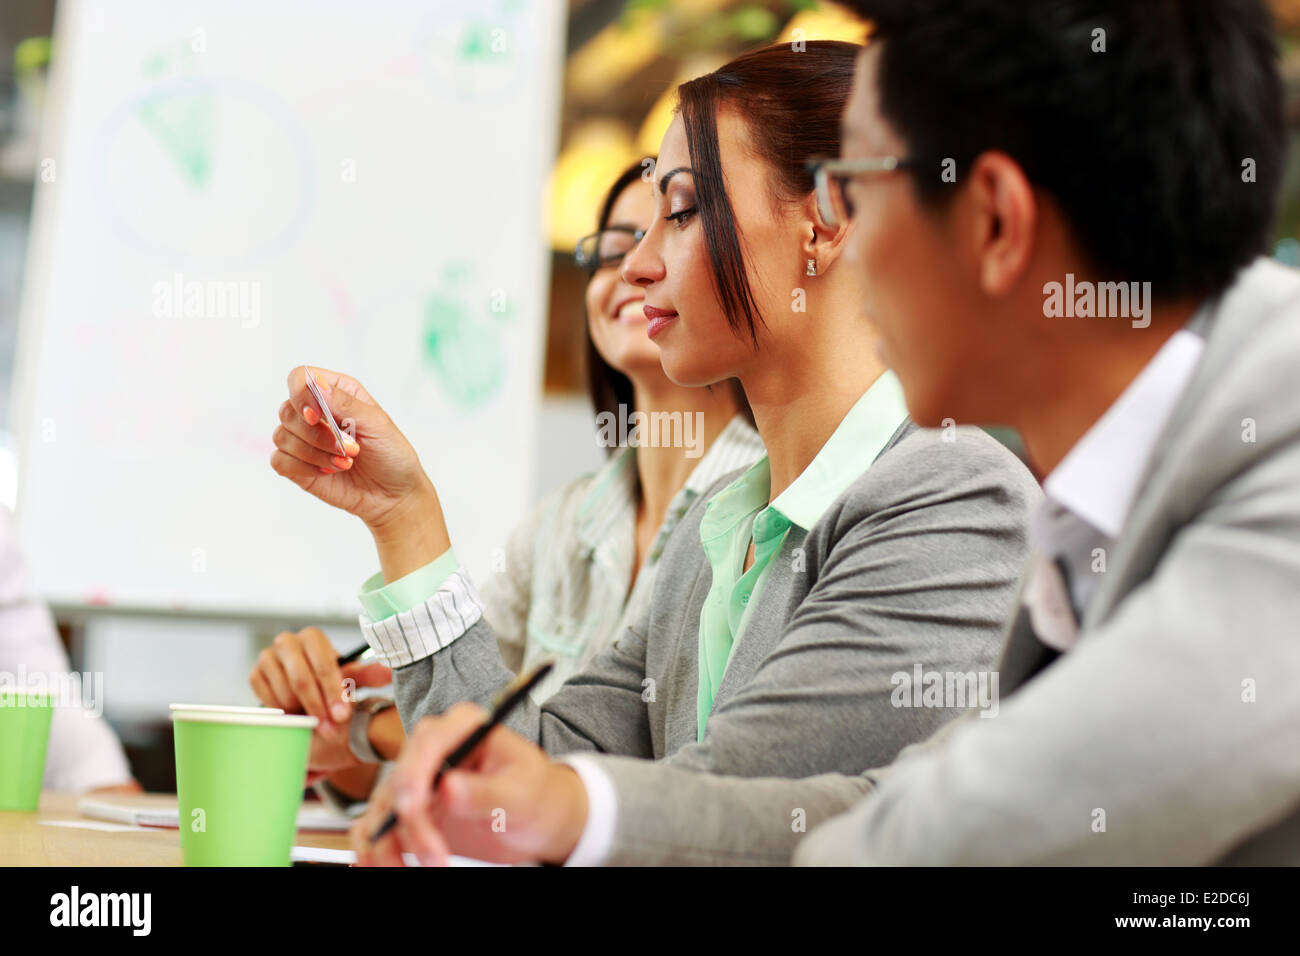 Businesswoman looking at business card in meeting - Stock Image